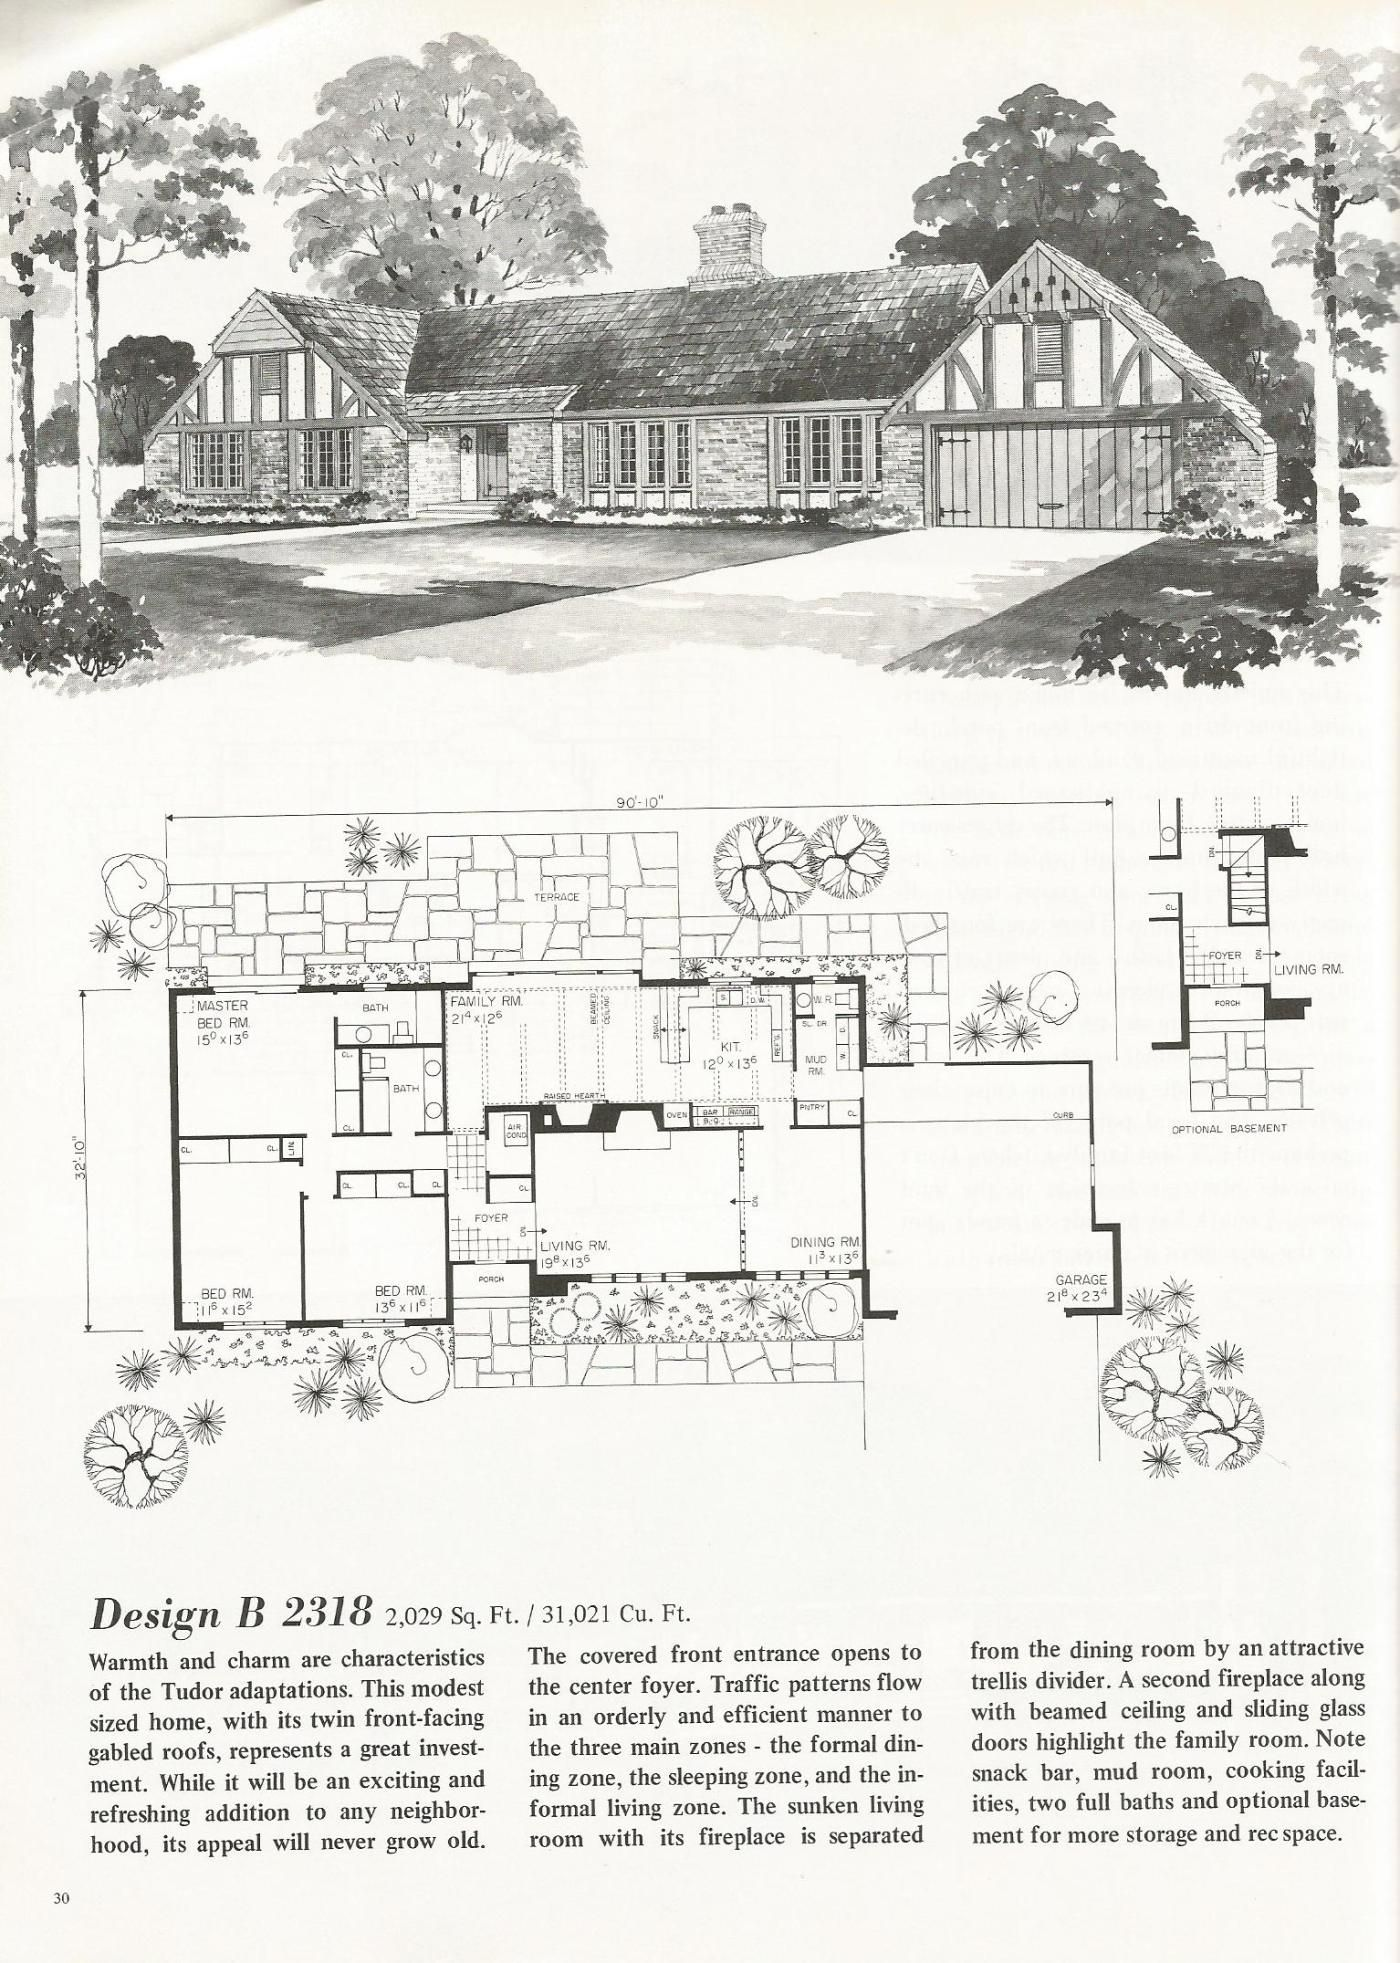 Design B 2318 Vintage House Plans: French Country and